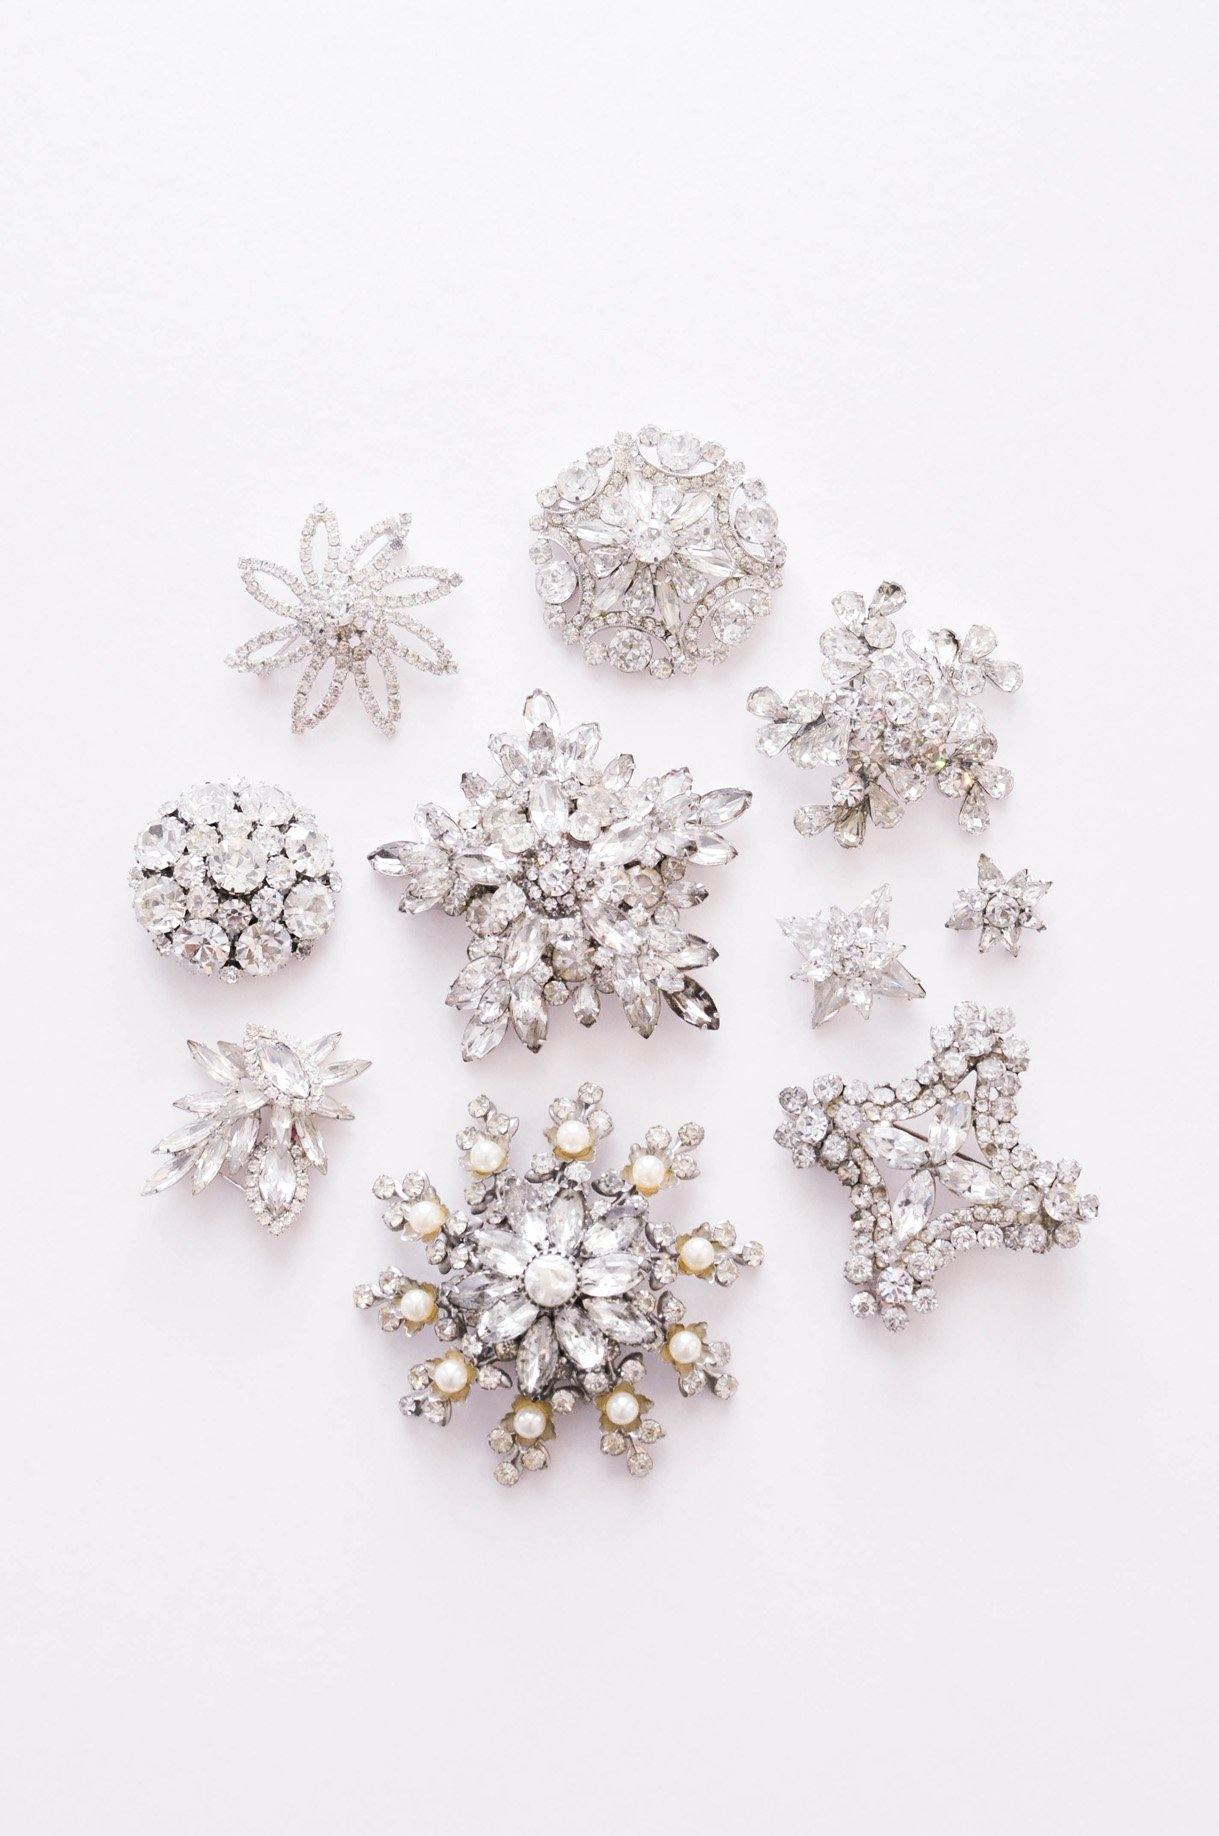 Statement Rhinestone Brooch